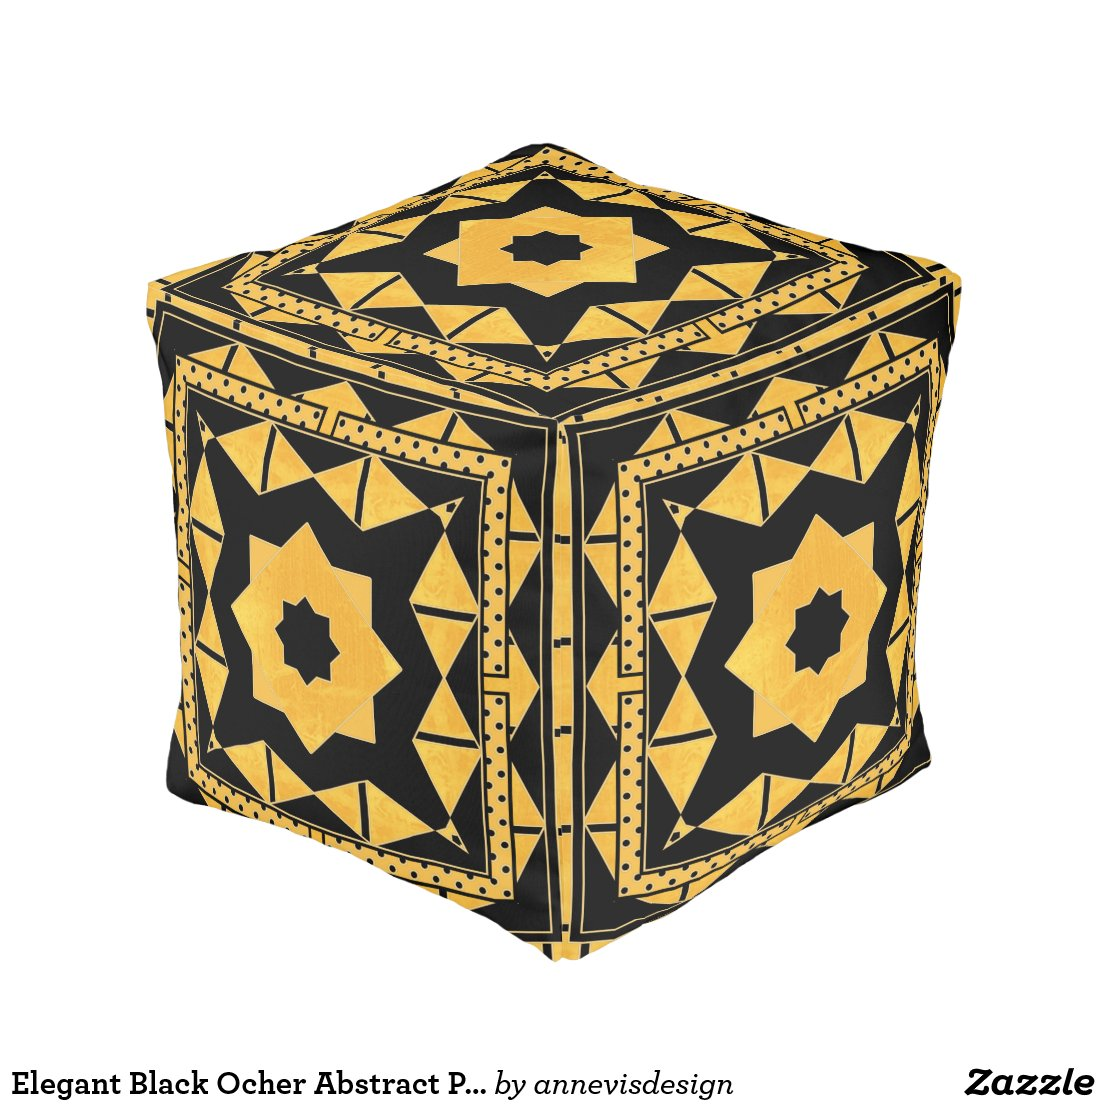 Elegant Black Ocher Abstract Patterned Pouf